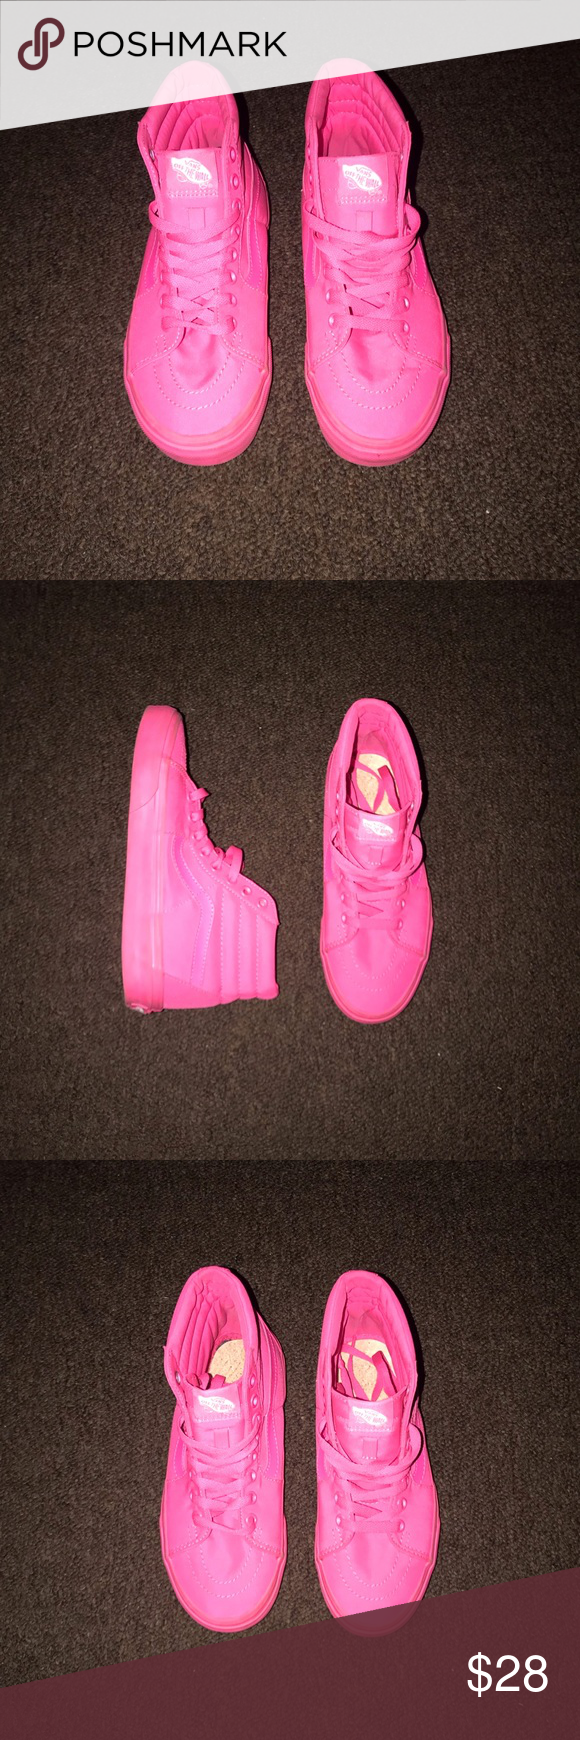 Highlighter Pink Vans. 👟 Cleaning out